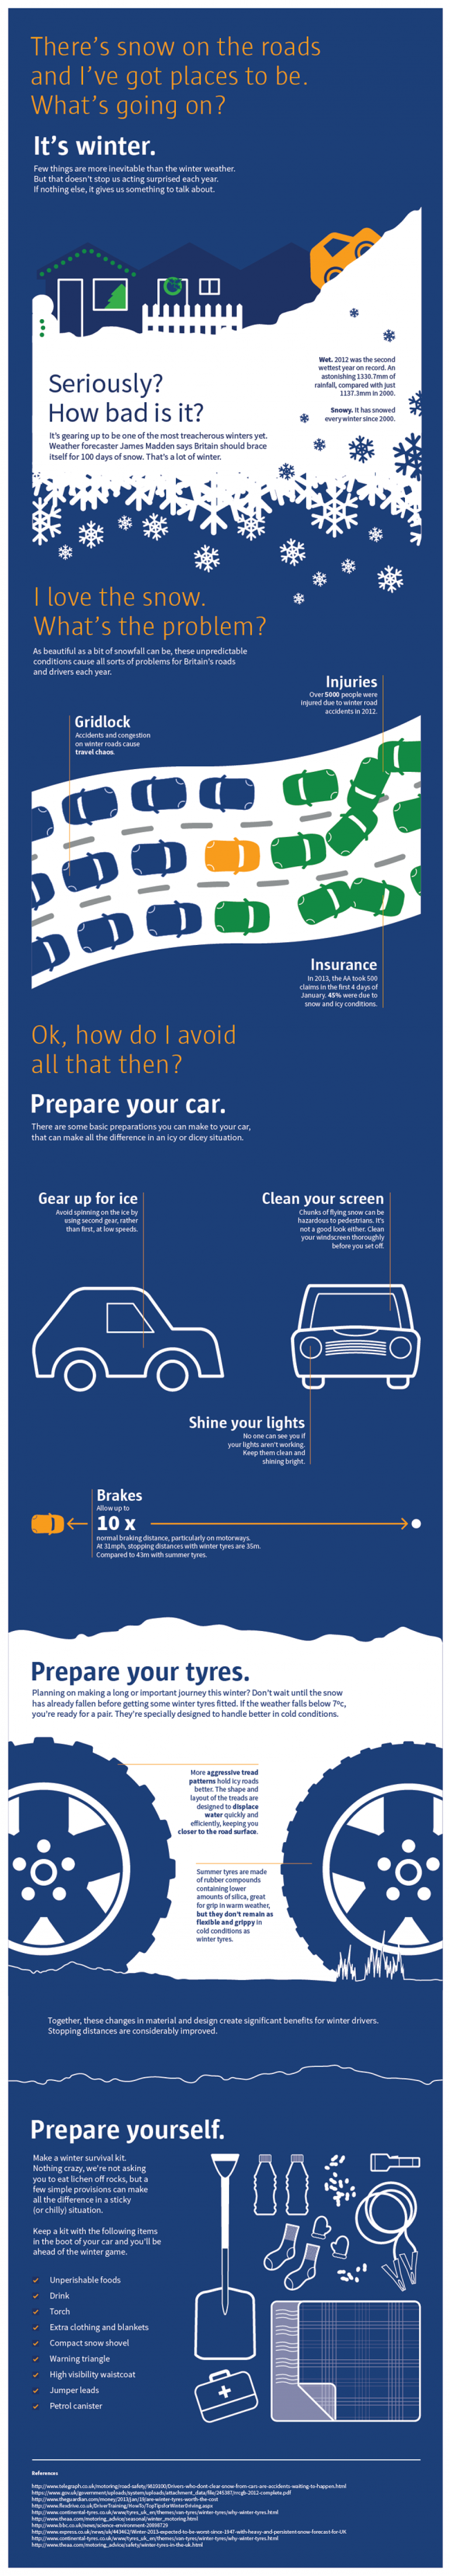 Winter driving tips: Prepare yourself and your car [infographic]